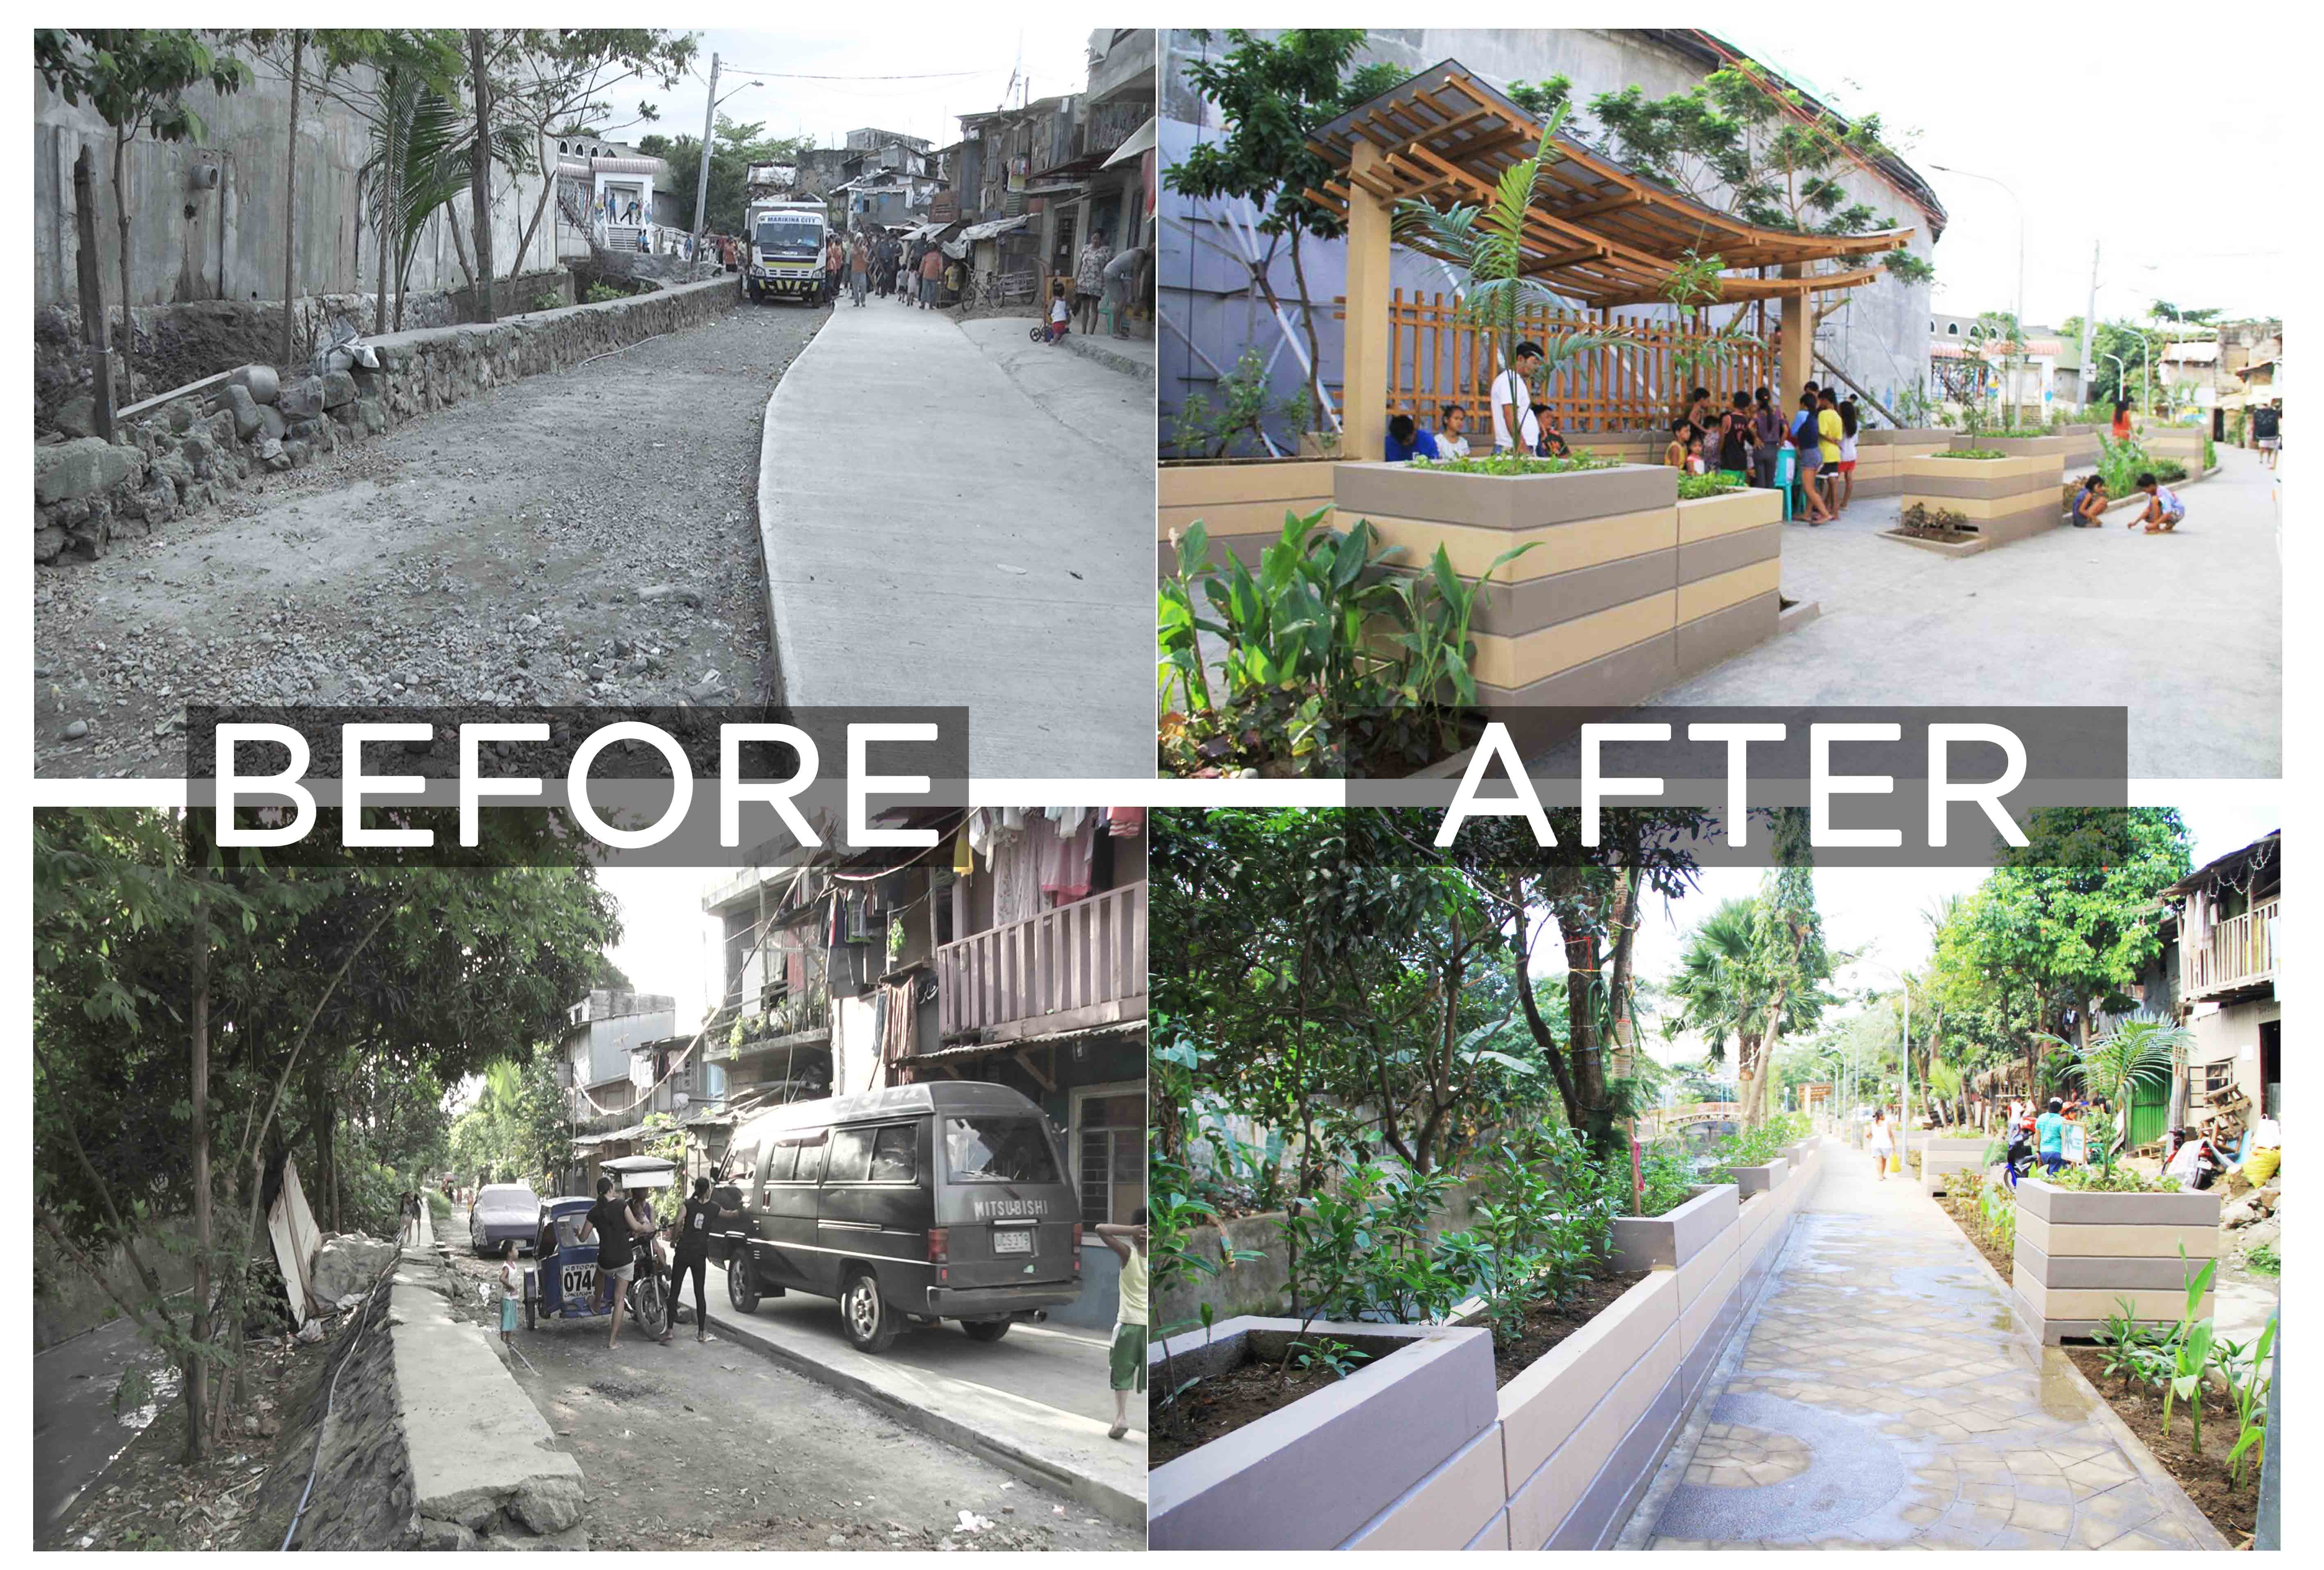 New linear park to transform lives in Marikina